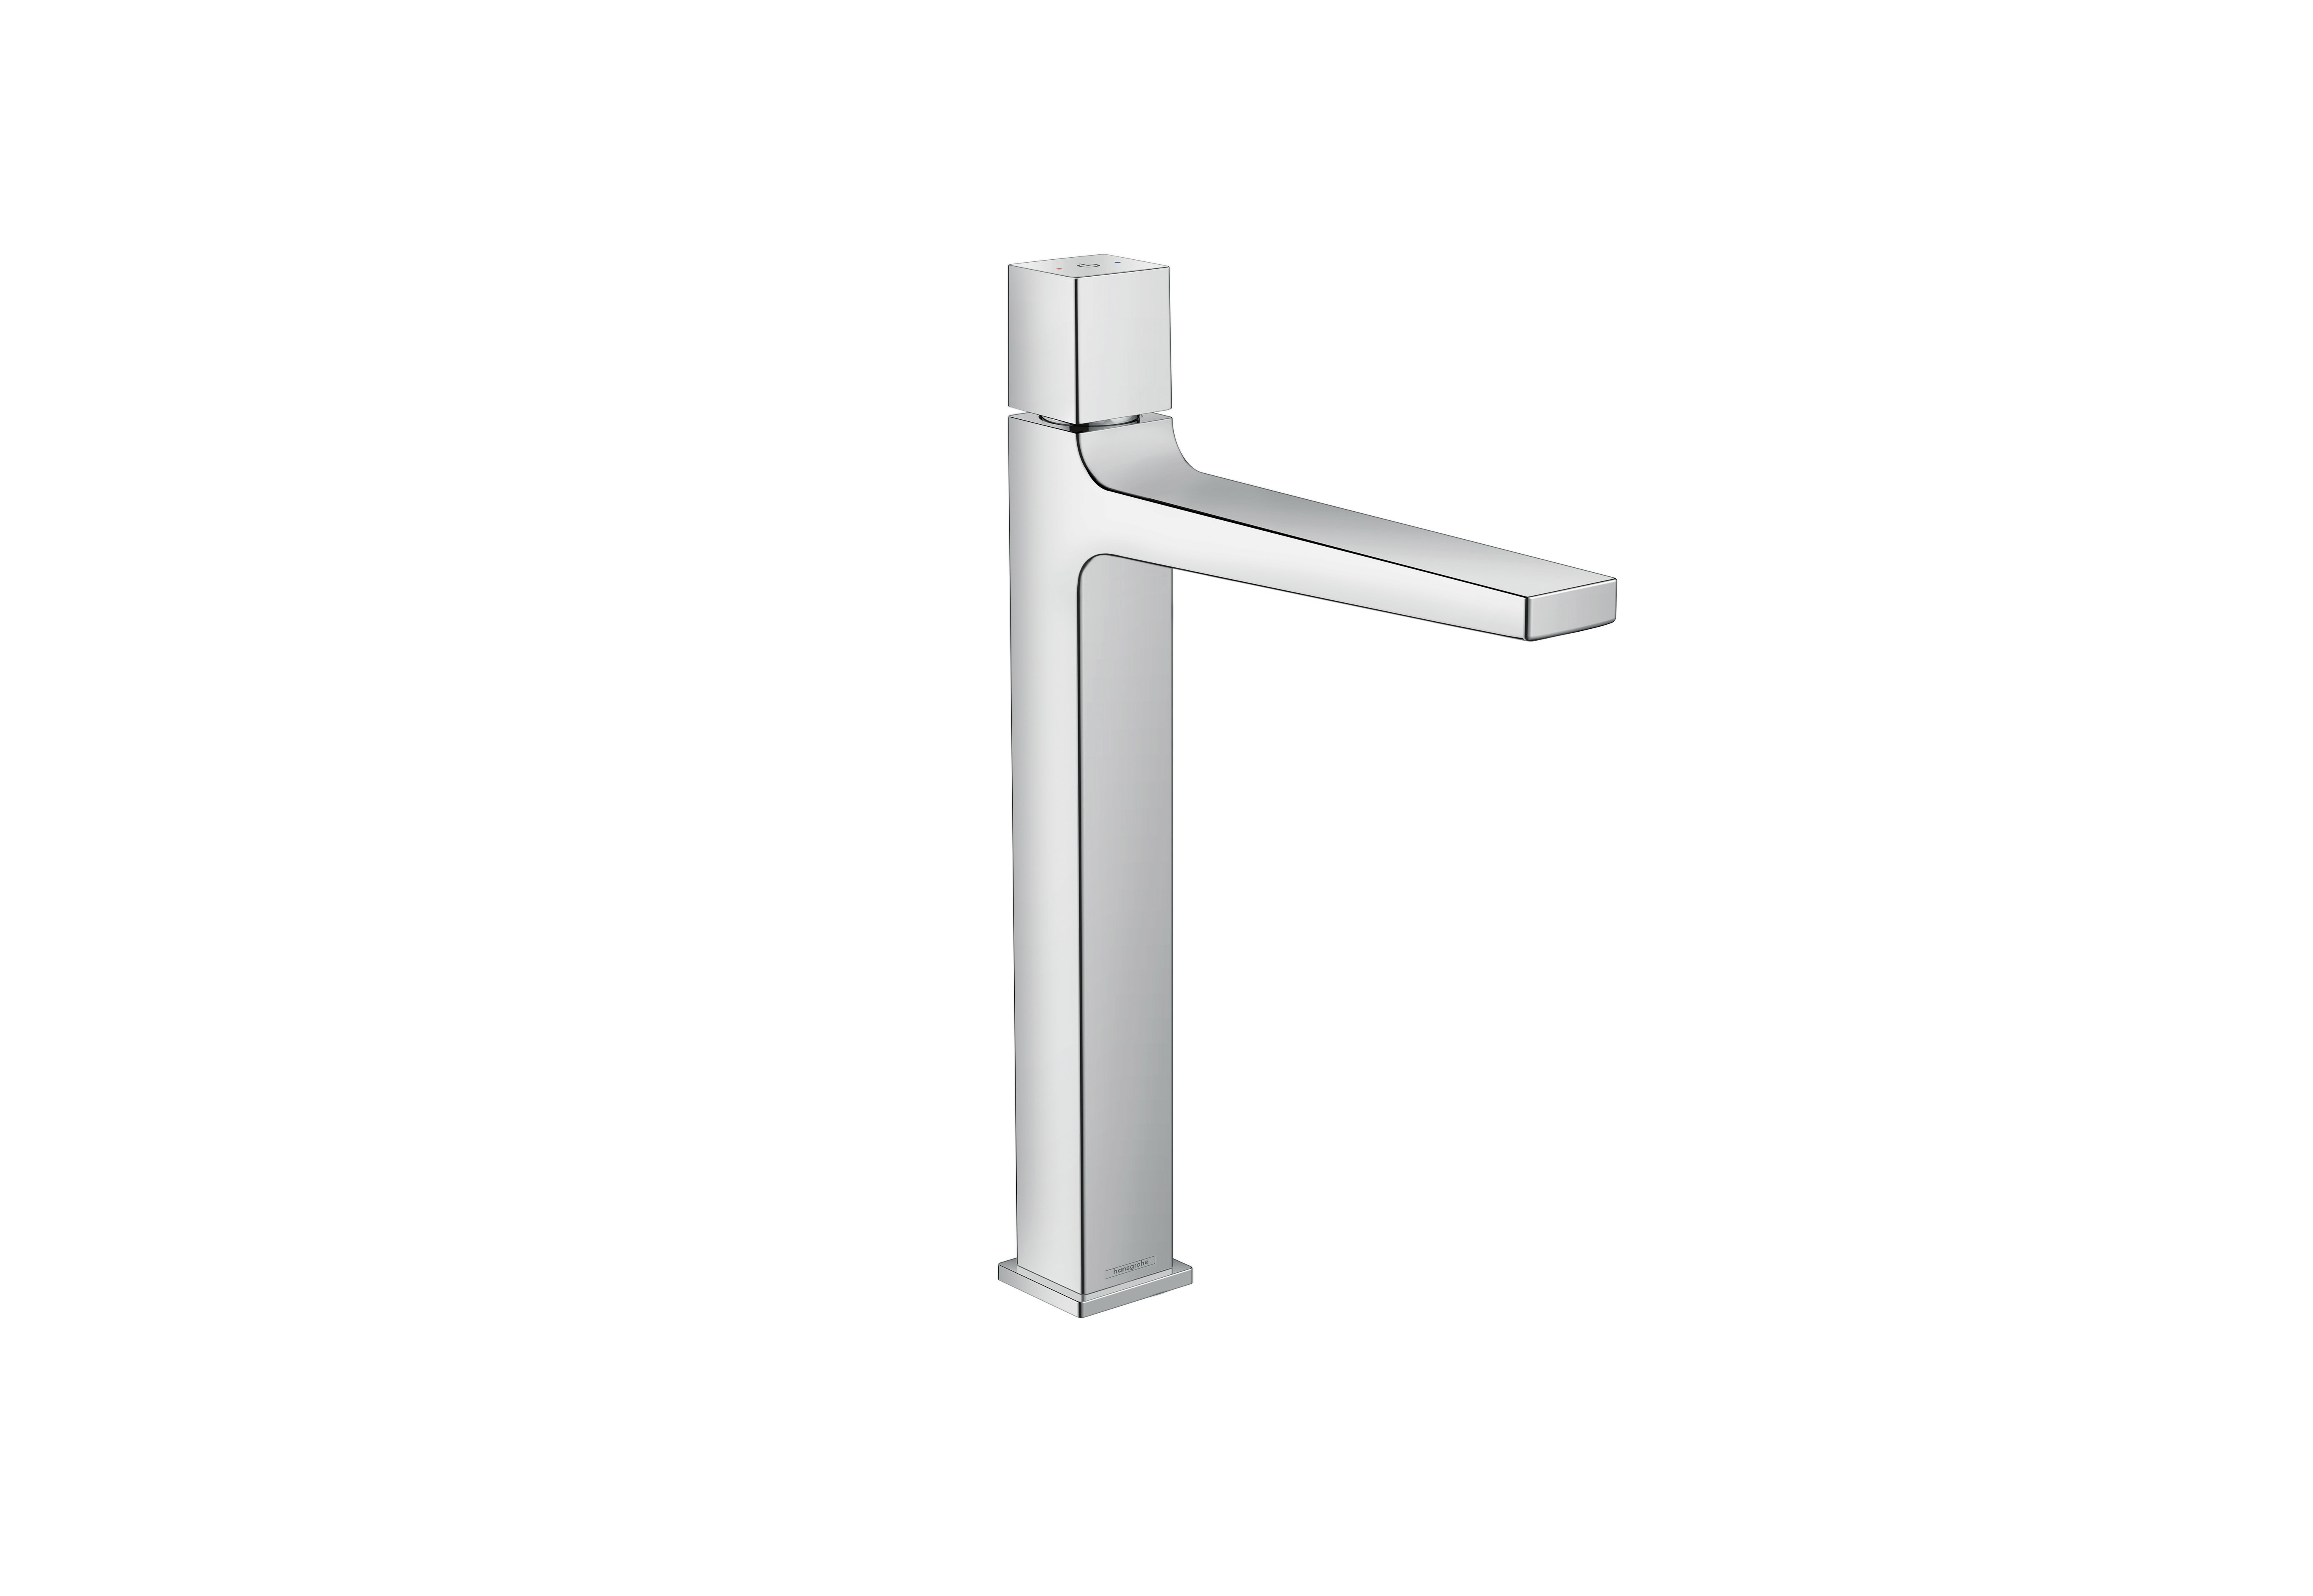 Hansgrohe Ag Metropol Select Single Lever Washbasin Mixer 260 By Hansgrohe